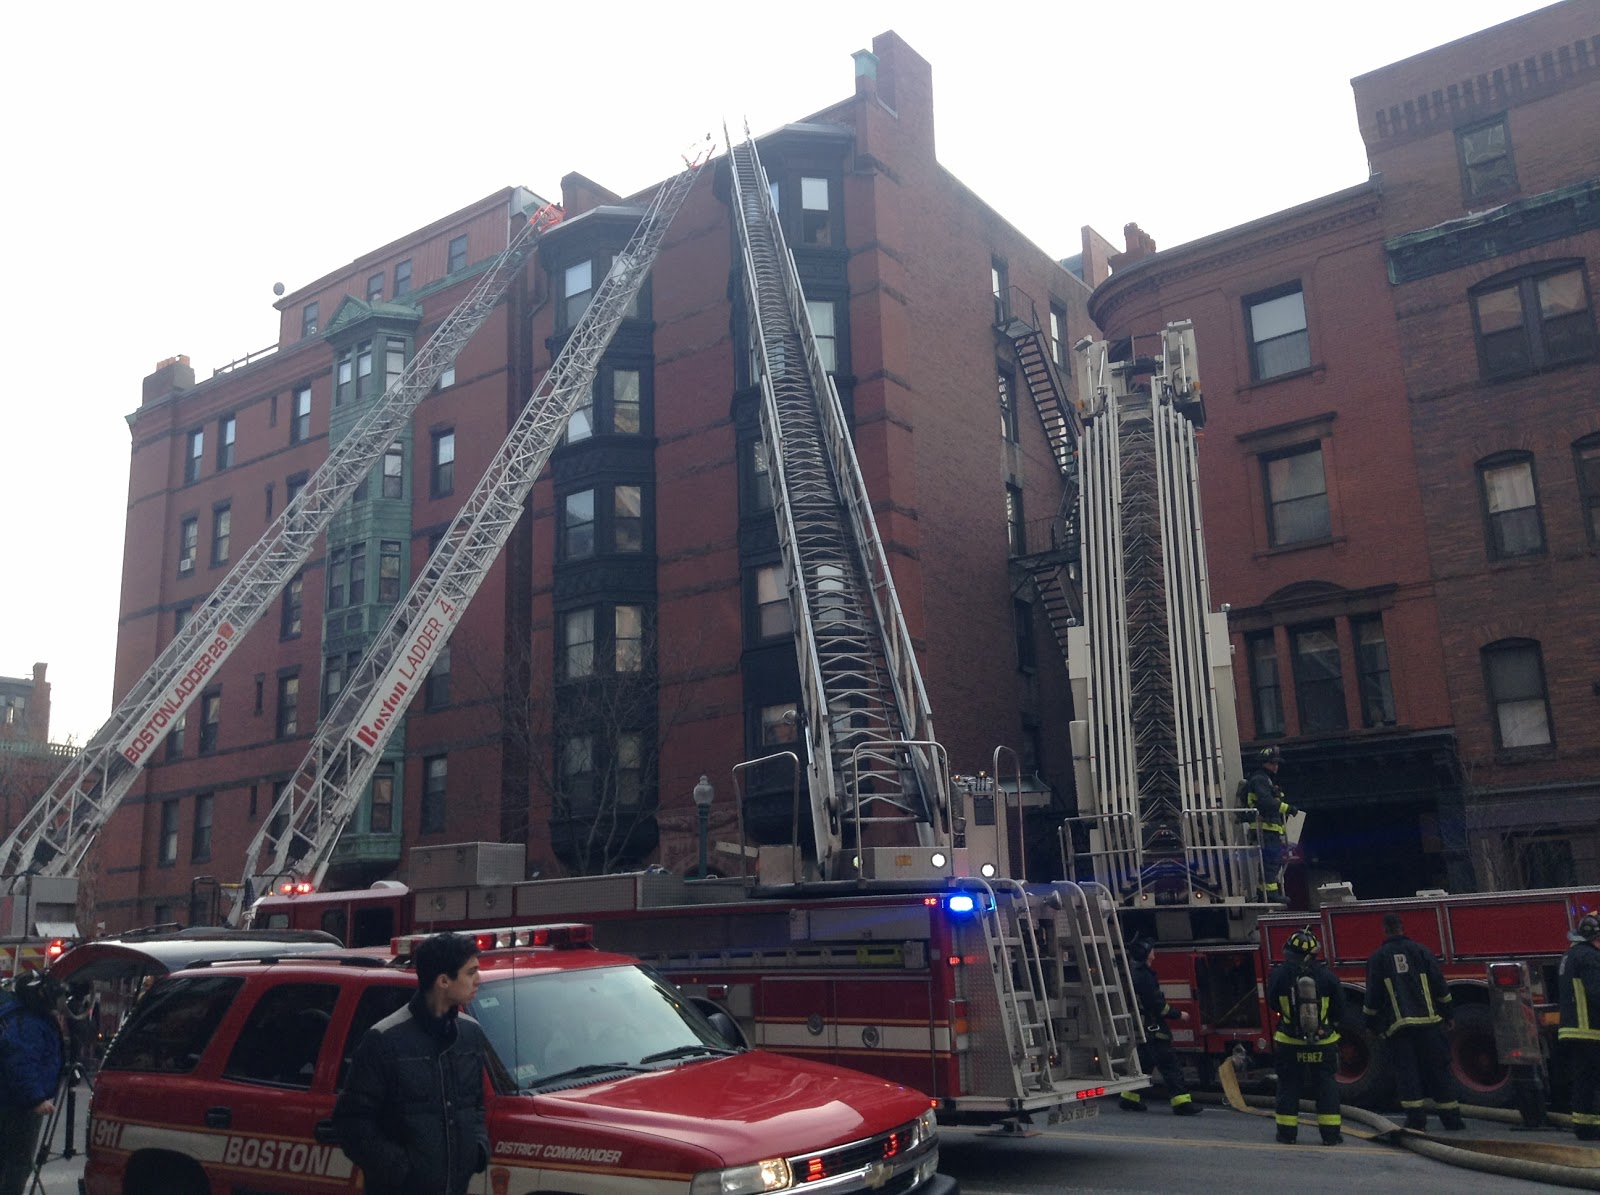 This was a 7-alarm fire in Back Bay in February that totaled the building, evicted 40 people, caused $2.5 million dollars in damage and sent a fire fighter to the hospital. Don't smoke and don't throw your butts in the trash, dummies.